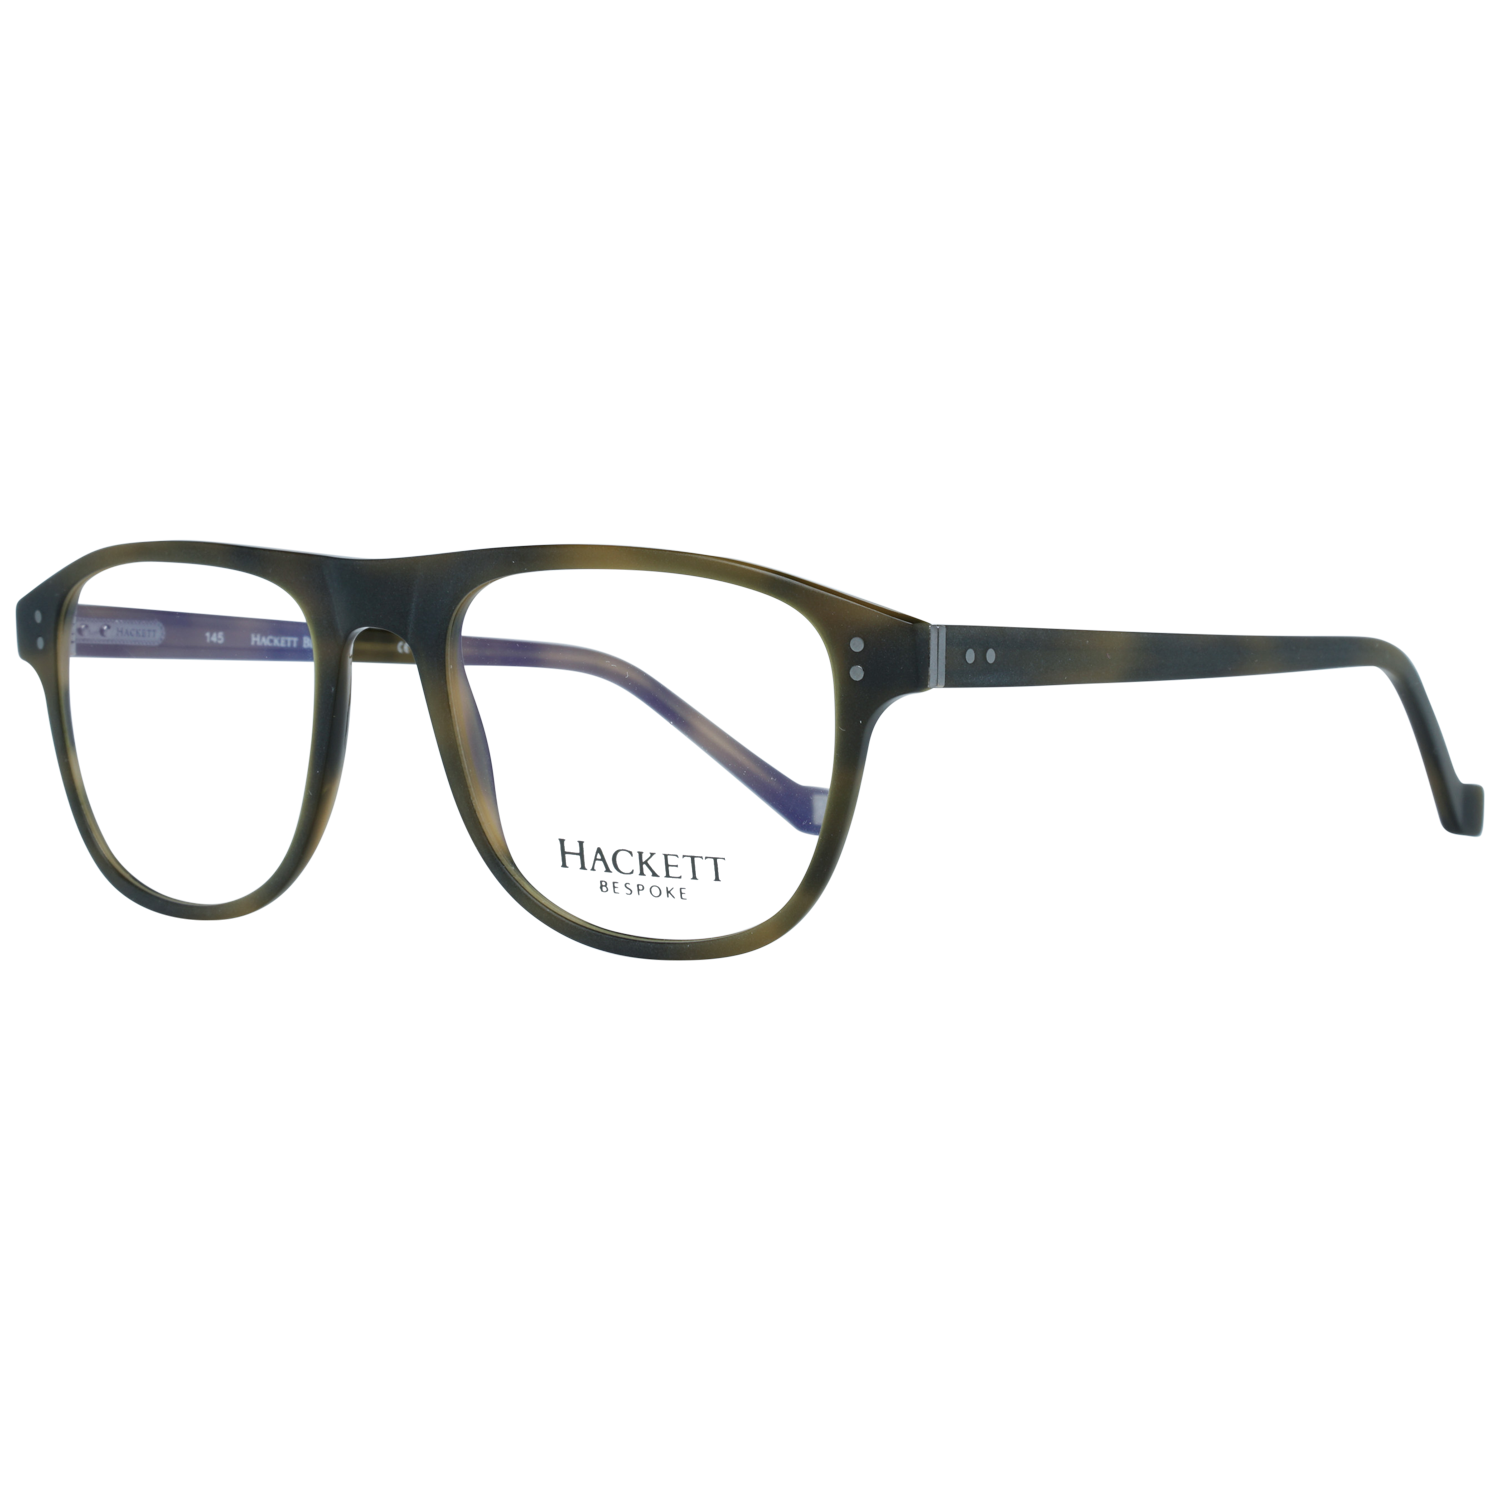 Hackett Bespoke Optical Frame HEB202 529 50 Olive